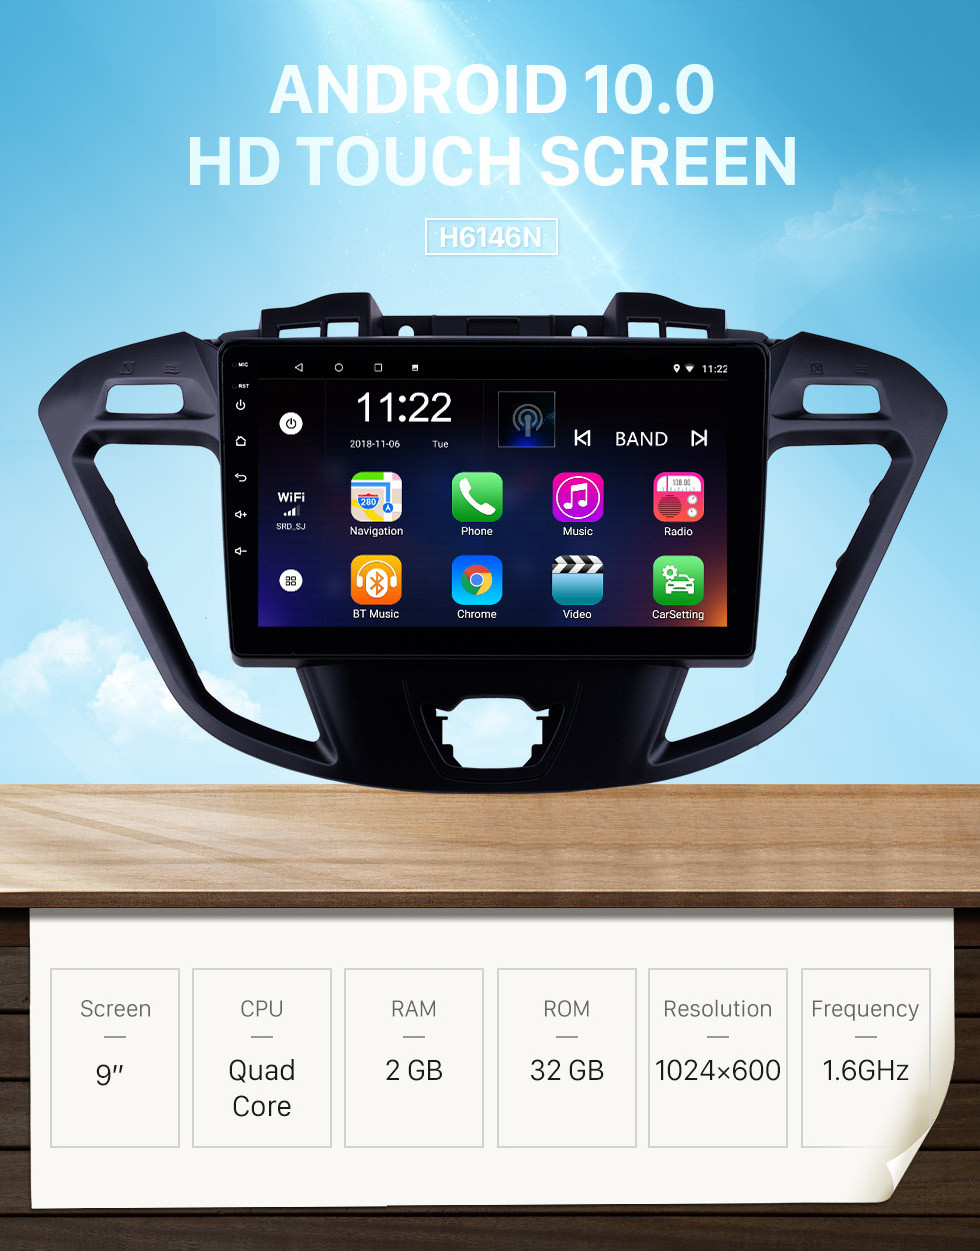 Seicane OEM HD Touchscreen Radio for 2017 2018 2019 Ford JMC Tourneo High Version 9 inch Android 10.0 Stereo USB Bluetooth support Mirror Link Carplay DVR TPMS